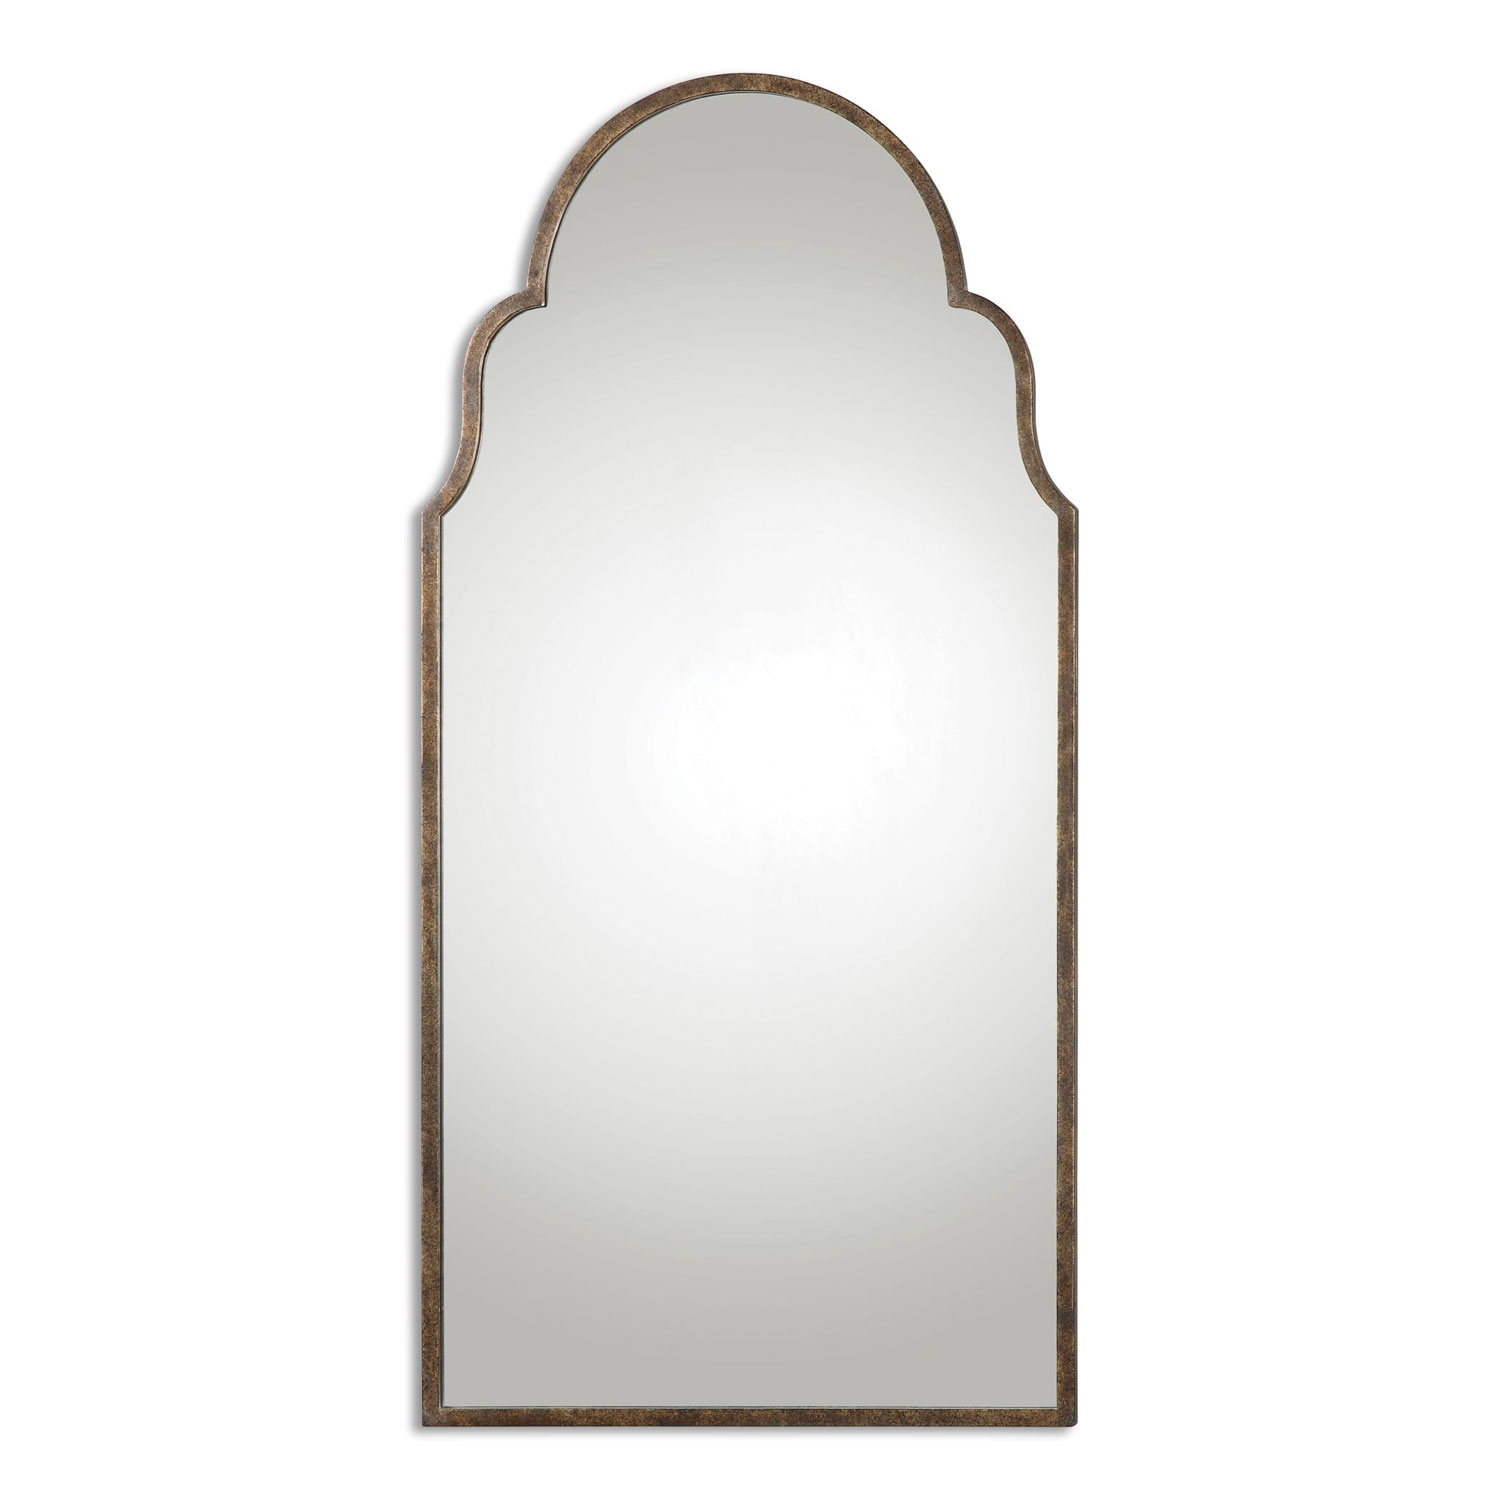 Arched Bathroom Wall Mirrors